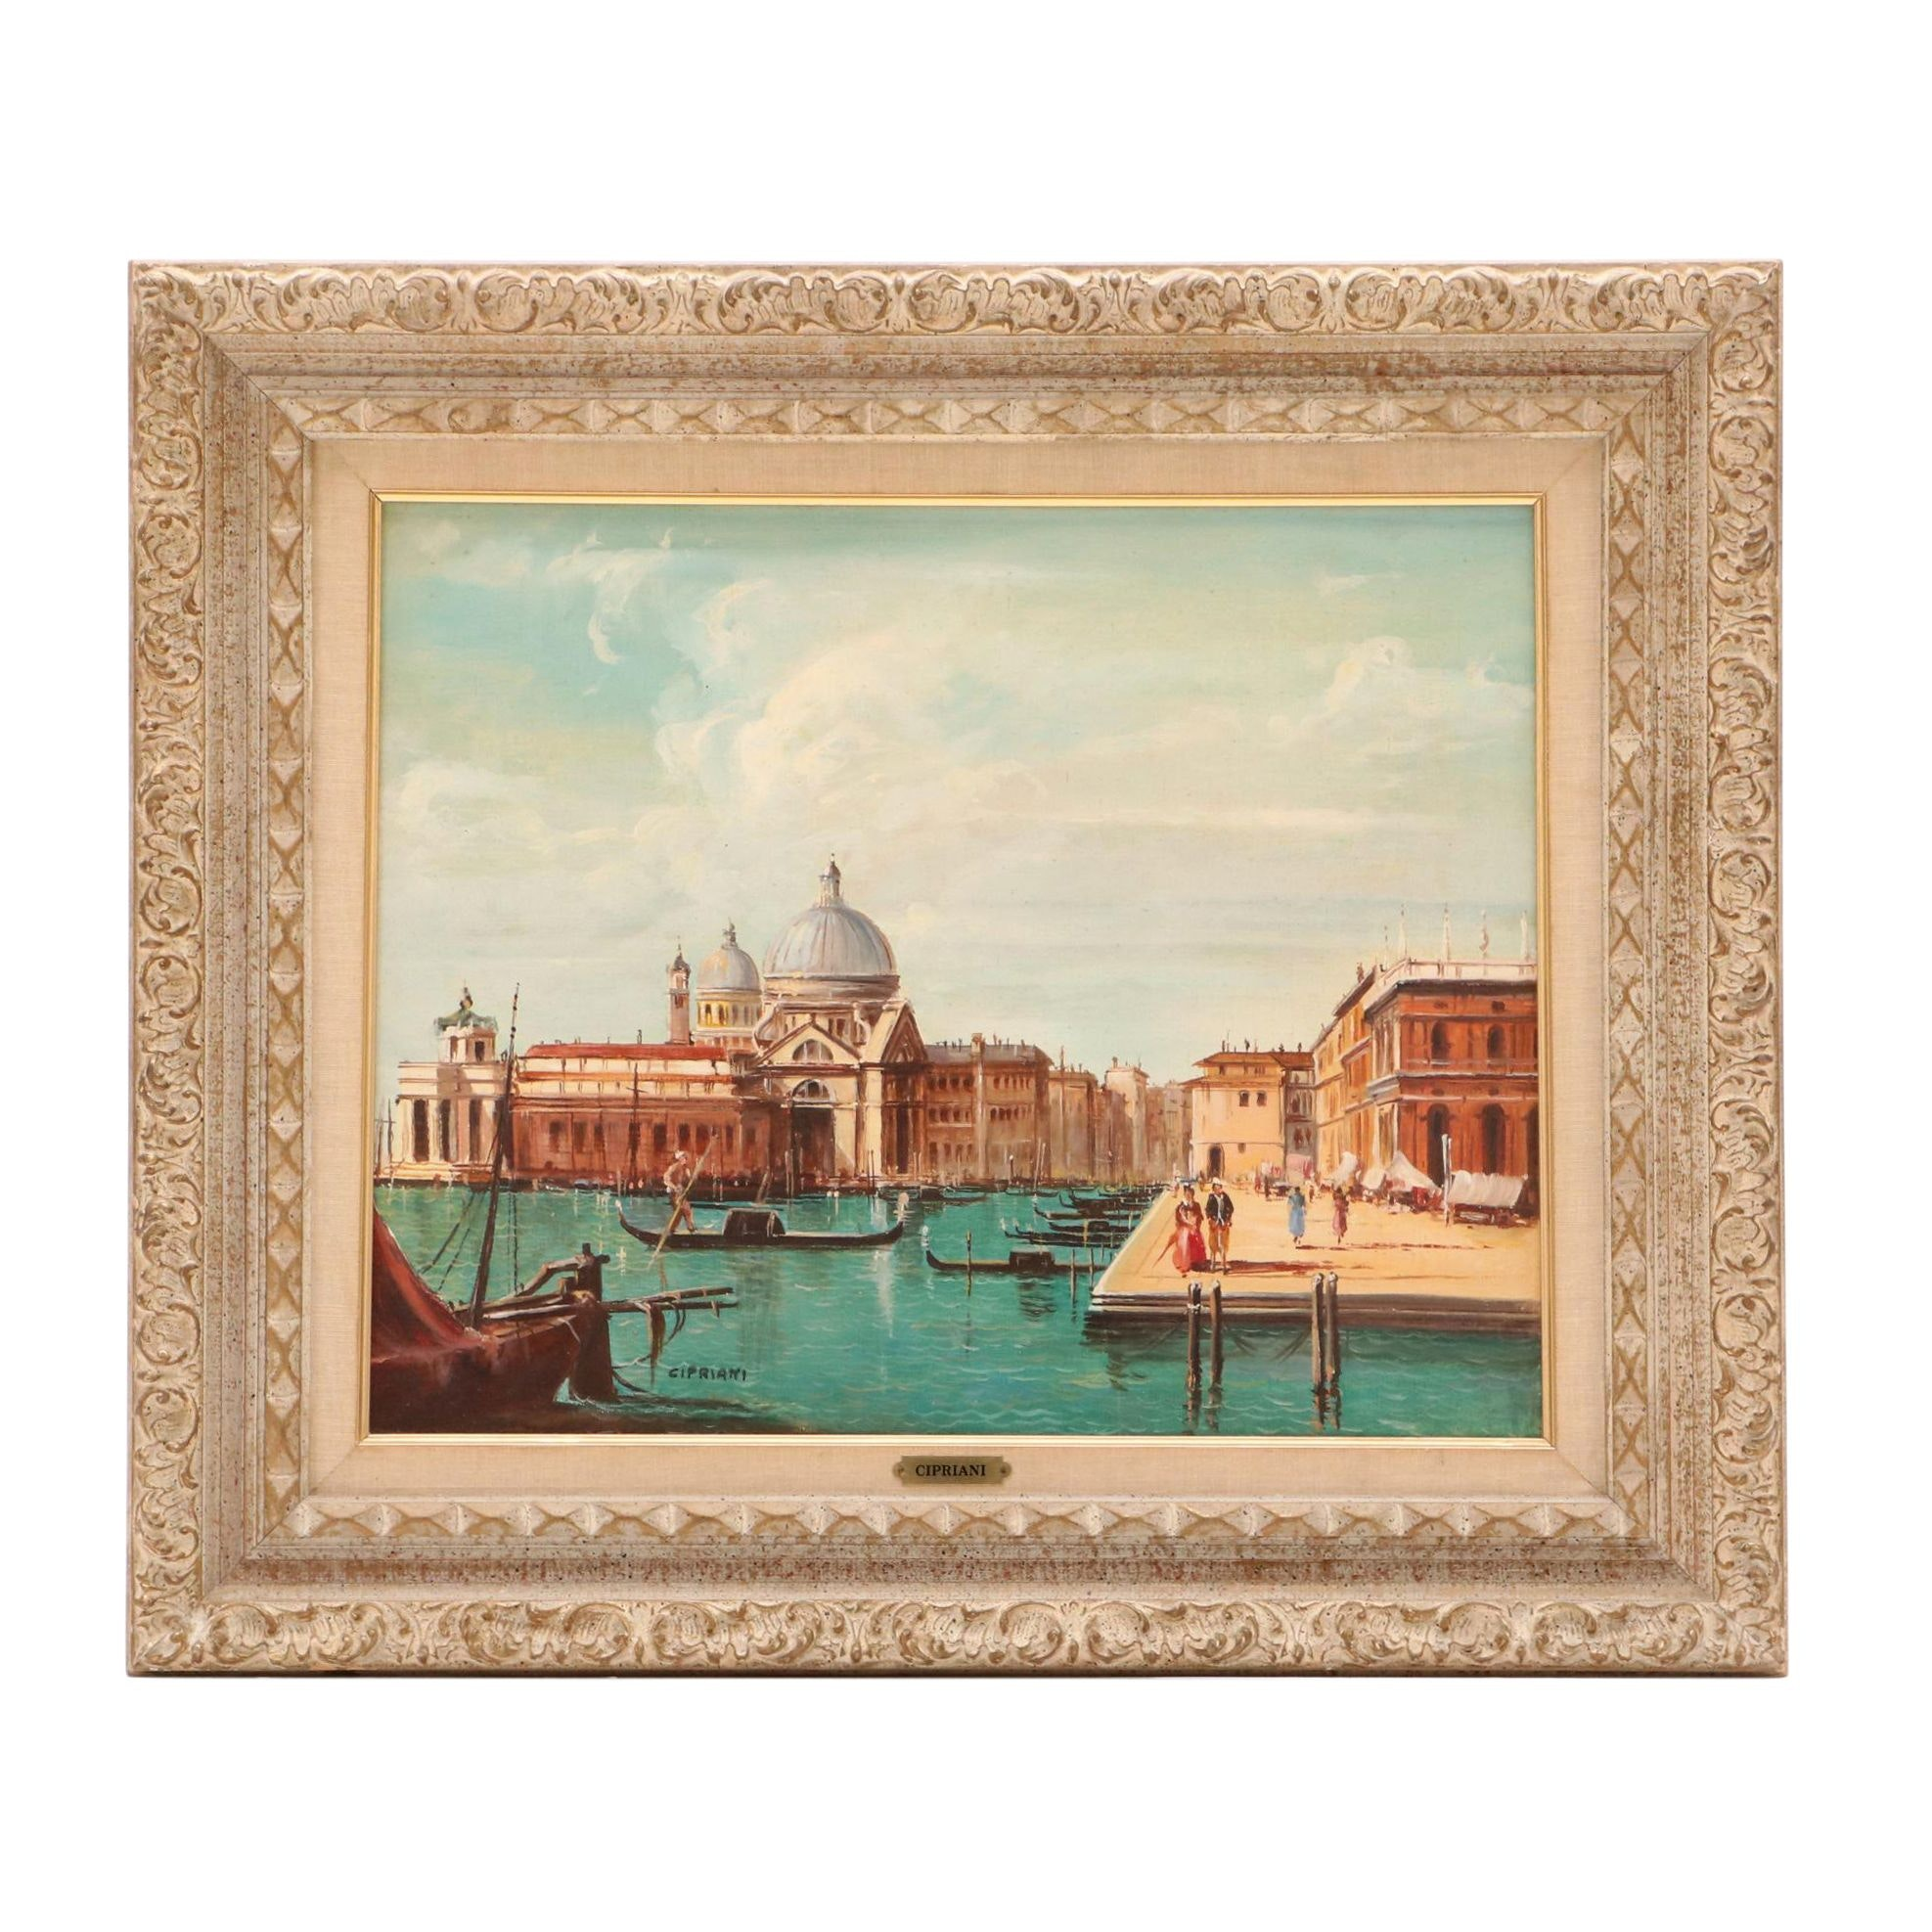 Cipriani Oil Painting of Venice, Italy